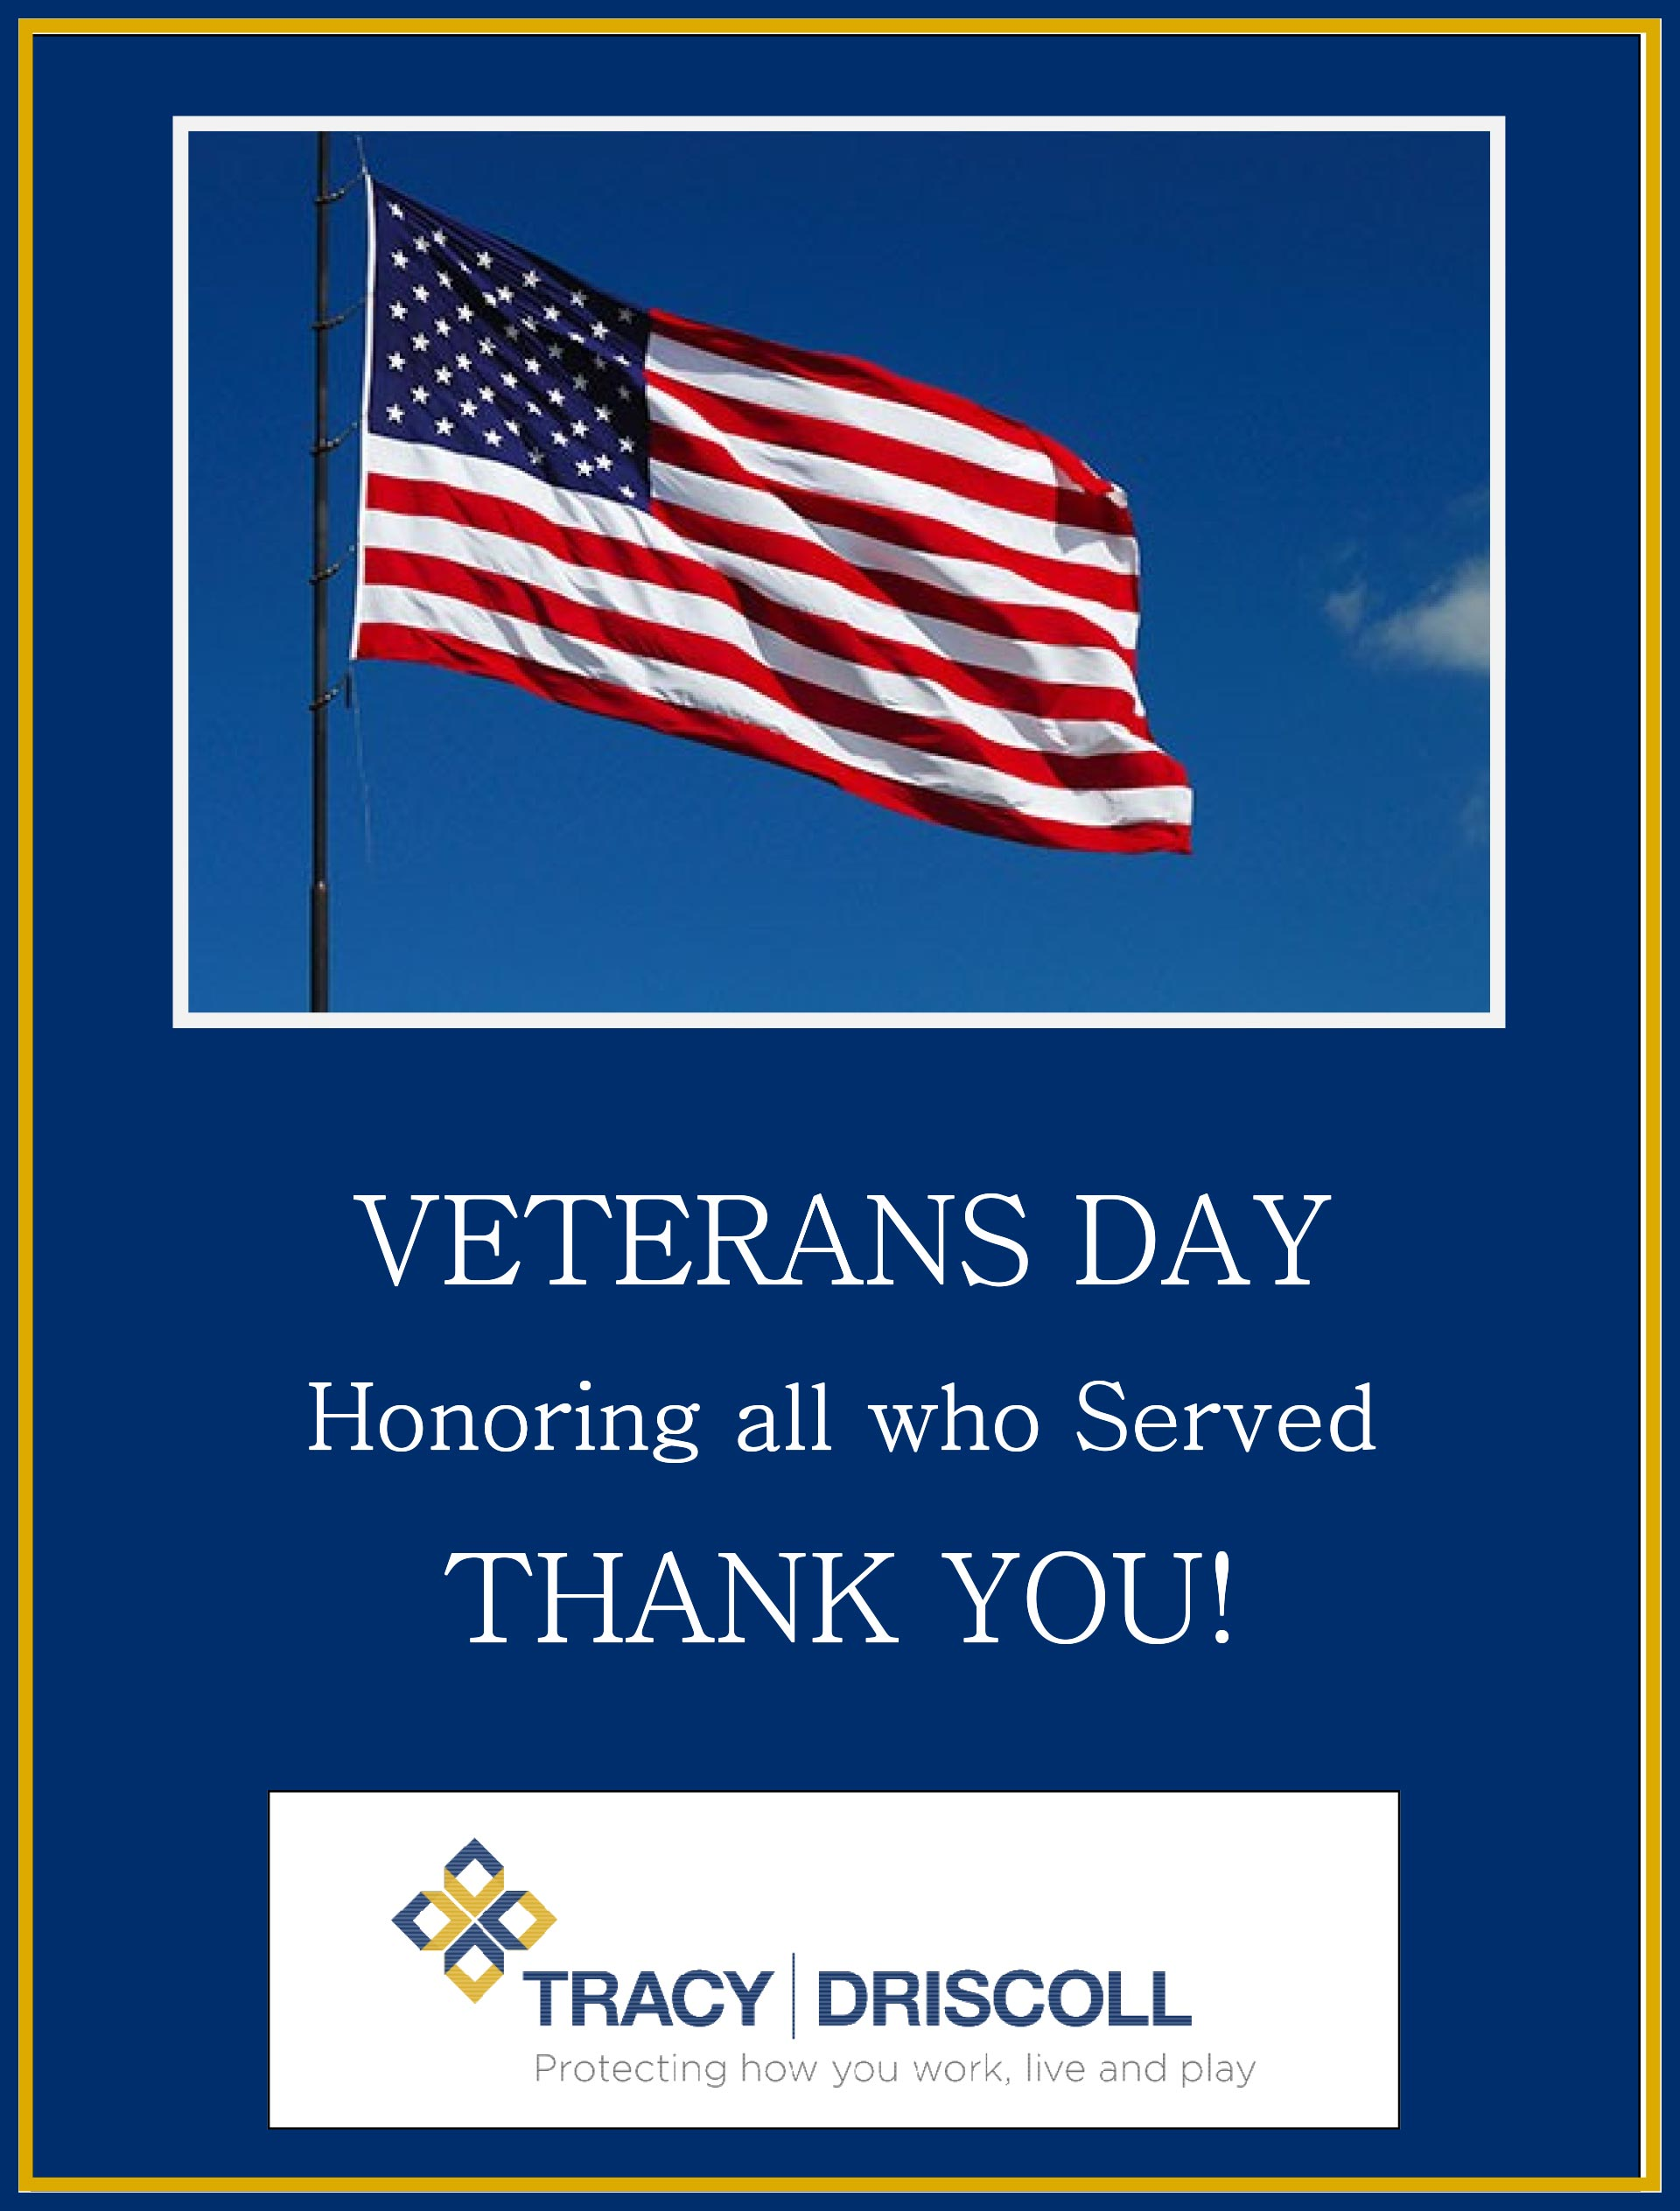 Honoring all who served, Happy Veterans Day!